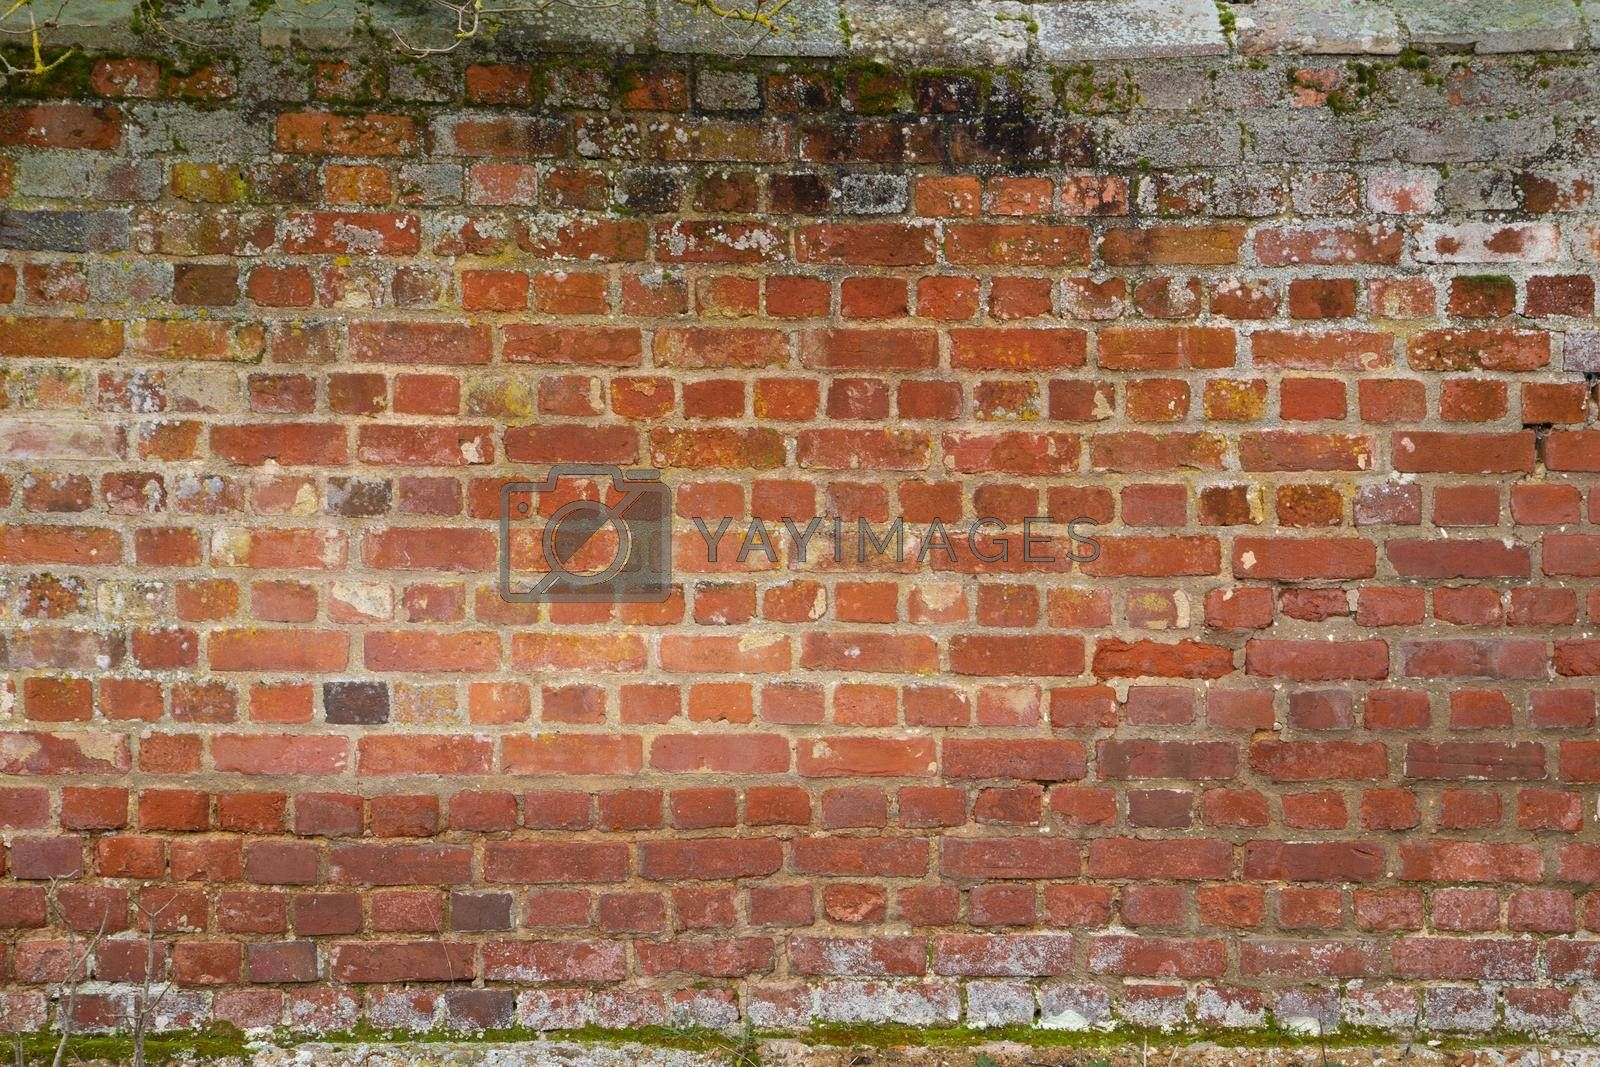 old grungy red brick wall surface with moss, Building Facade, Suffolk UK